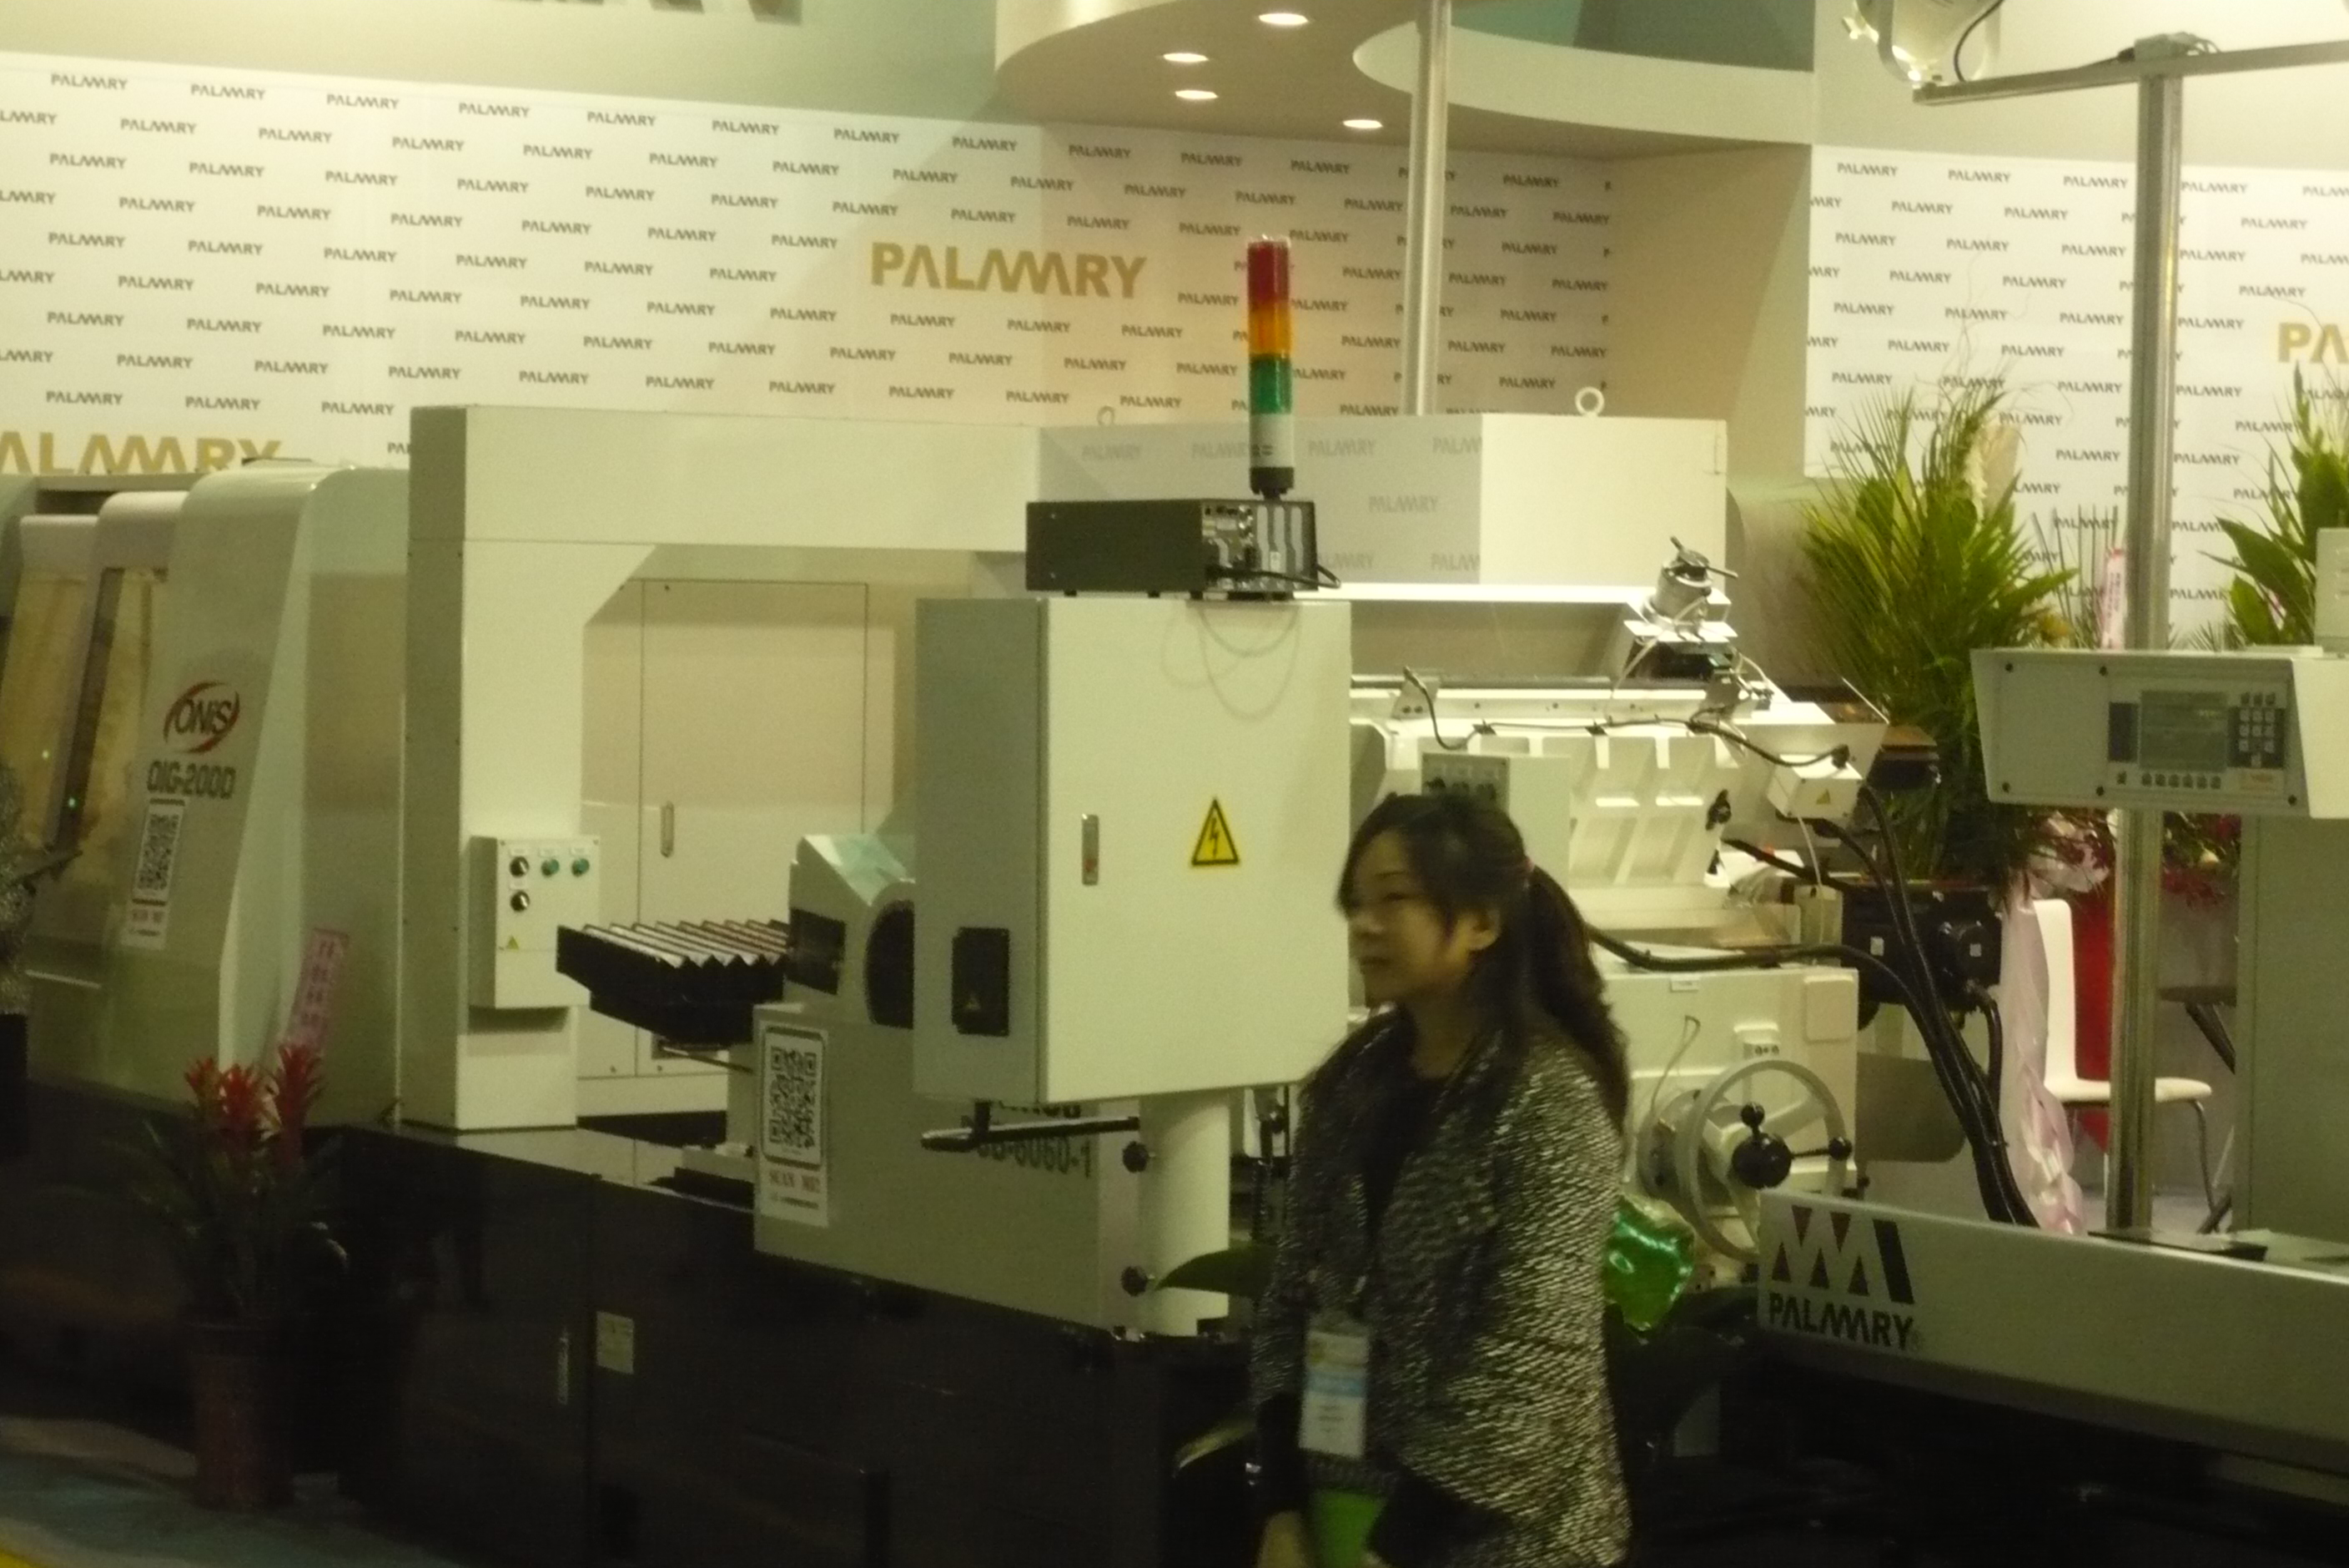 Taiwan's machinery exports fell 4.4% year on year in Jan. 2014